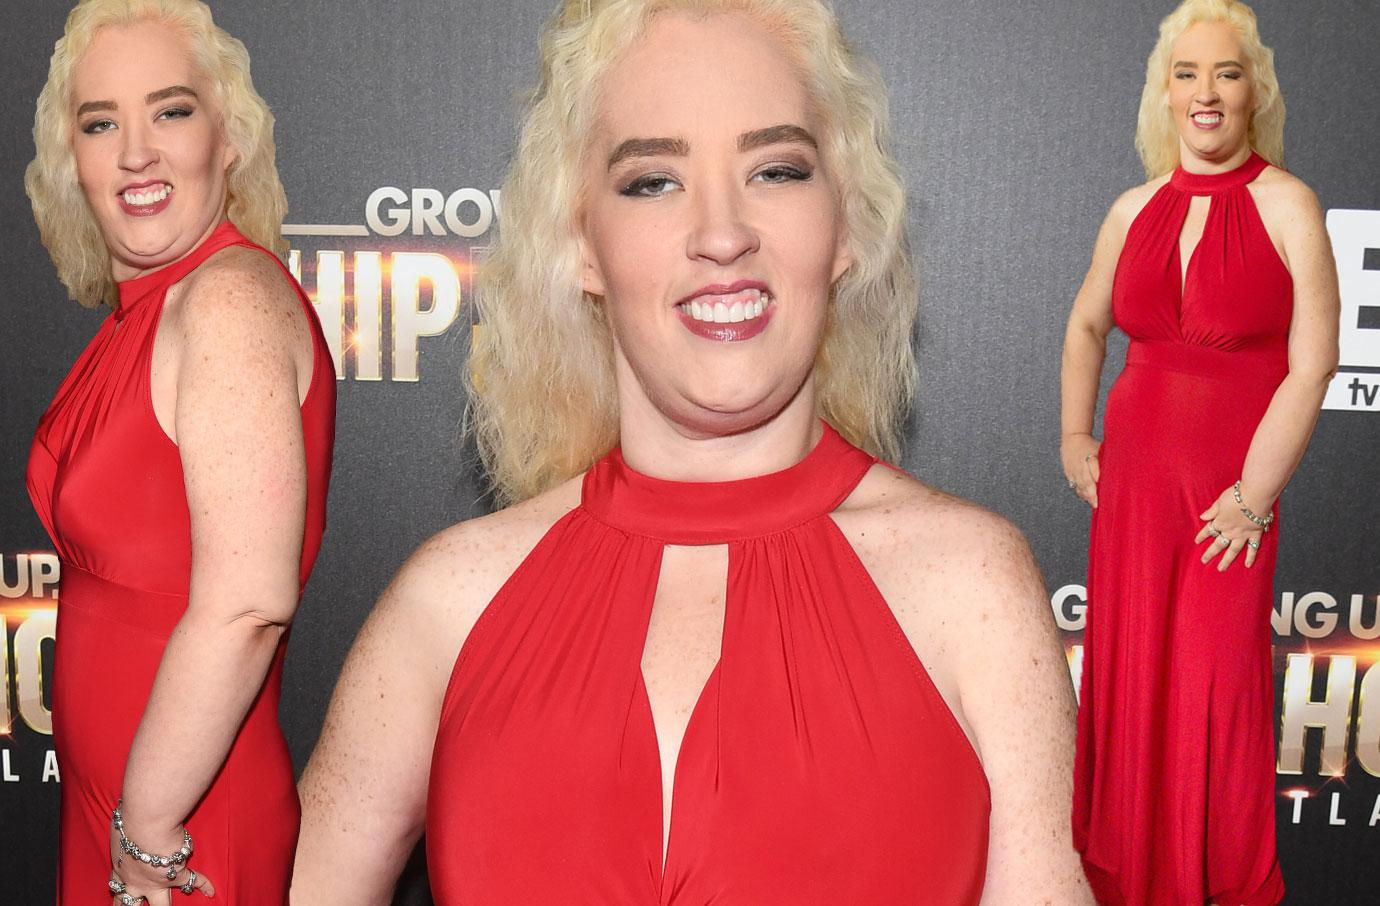 //mama june weight loss red dress premiere pp